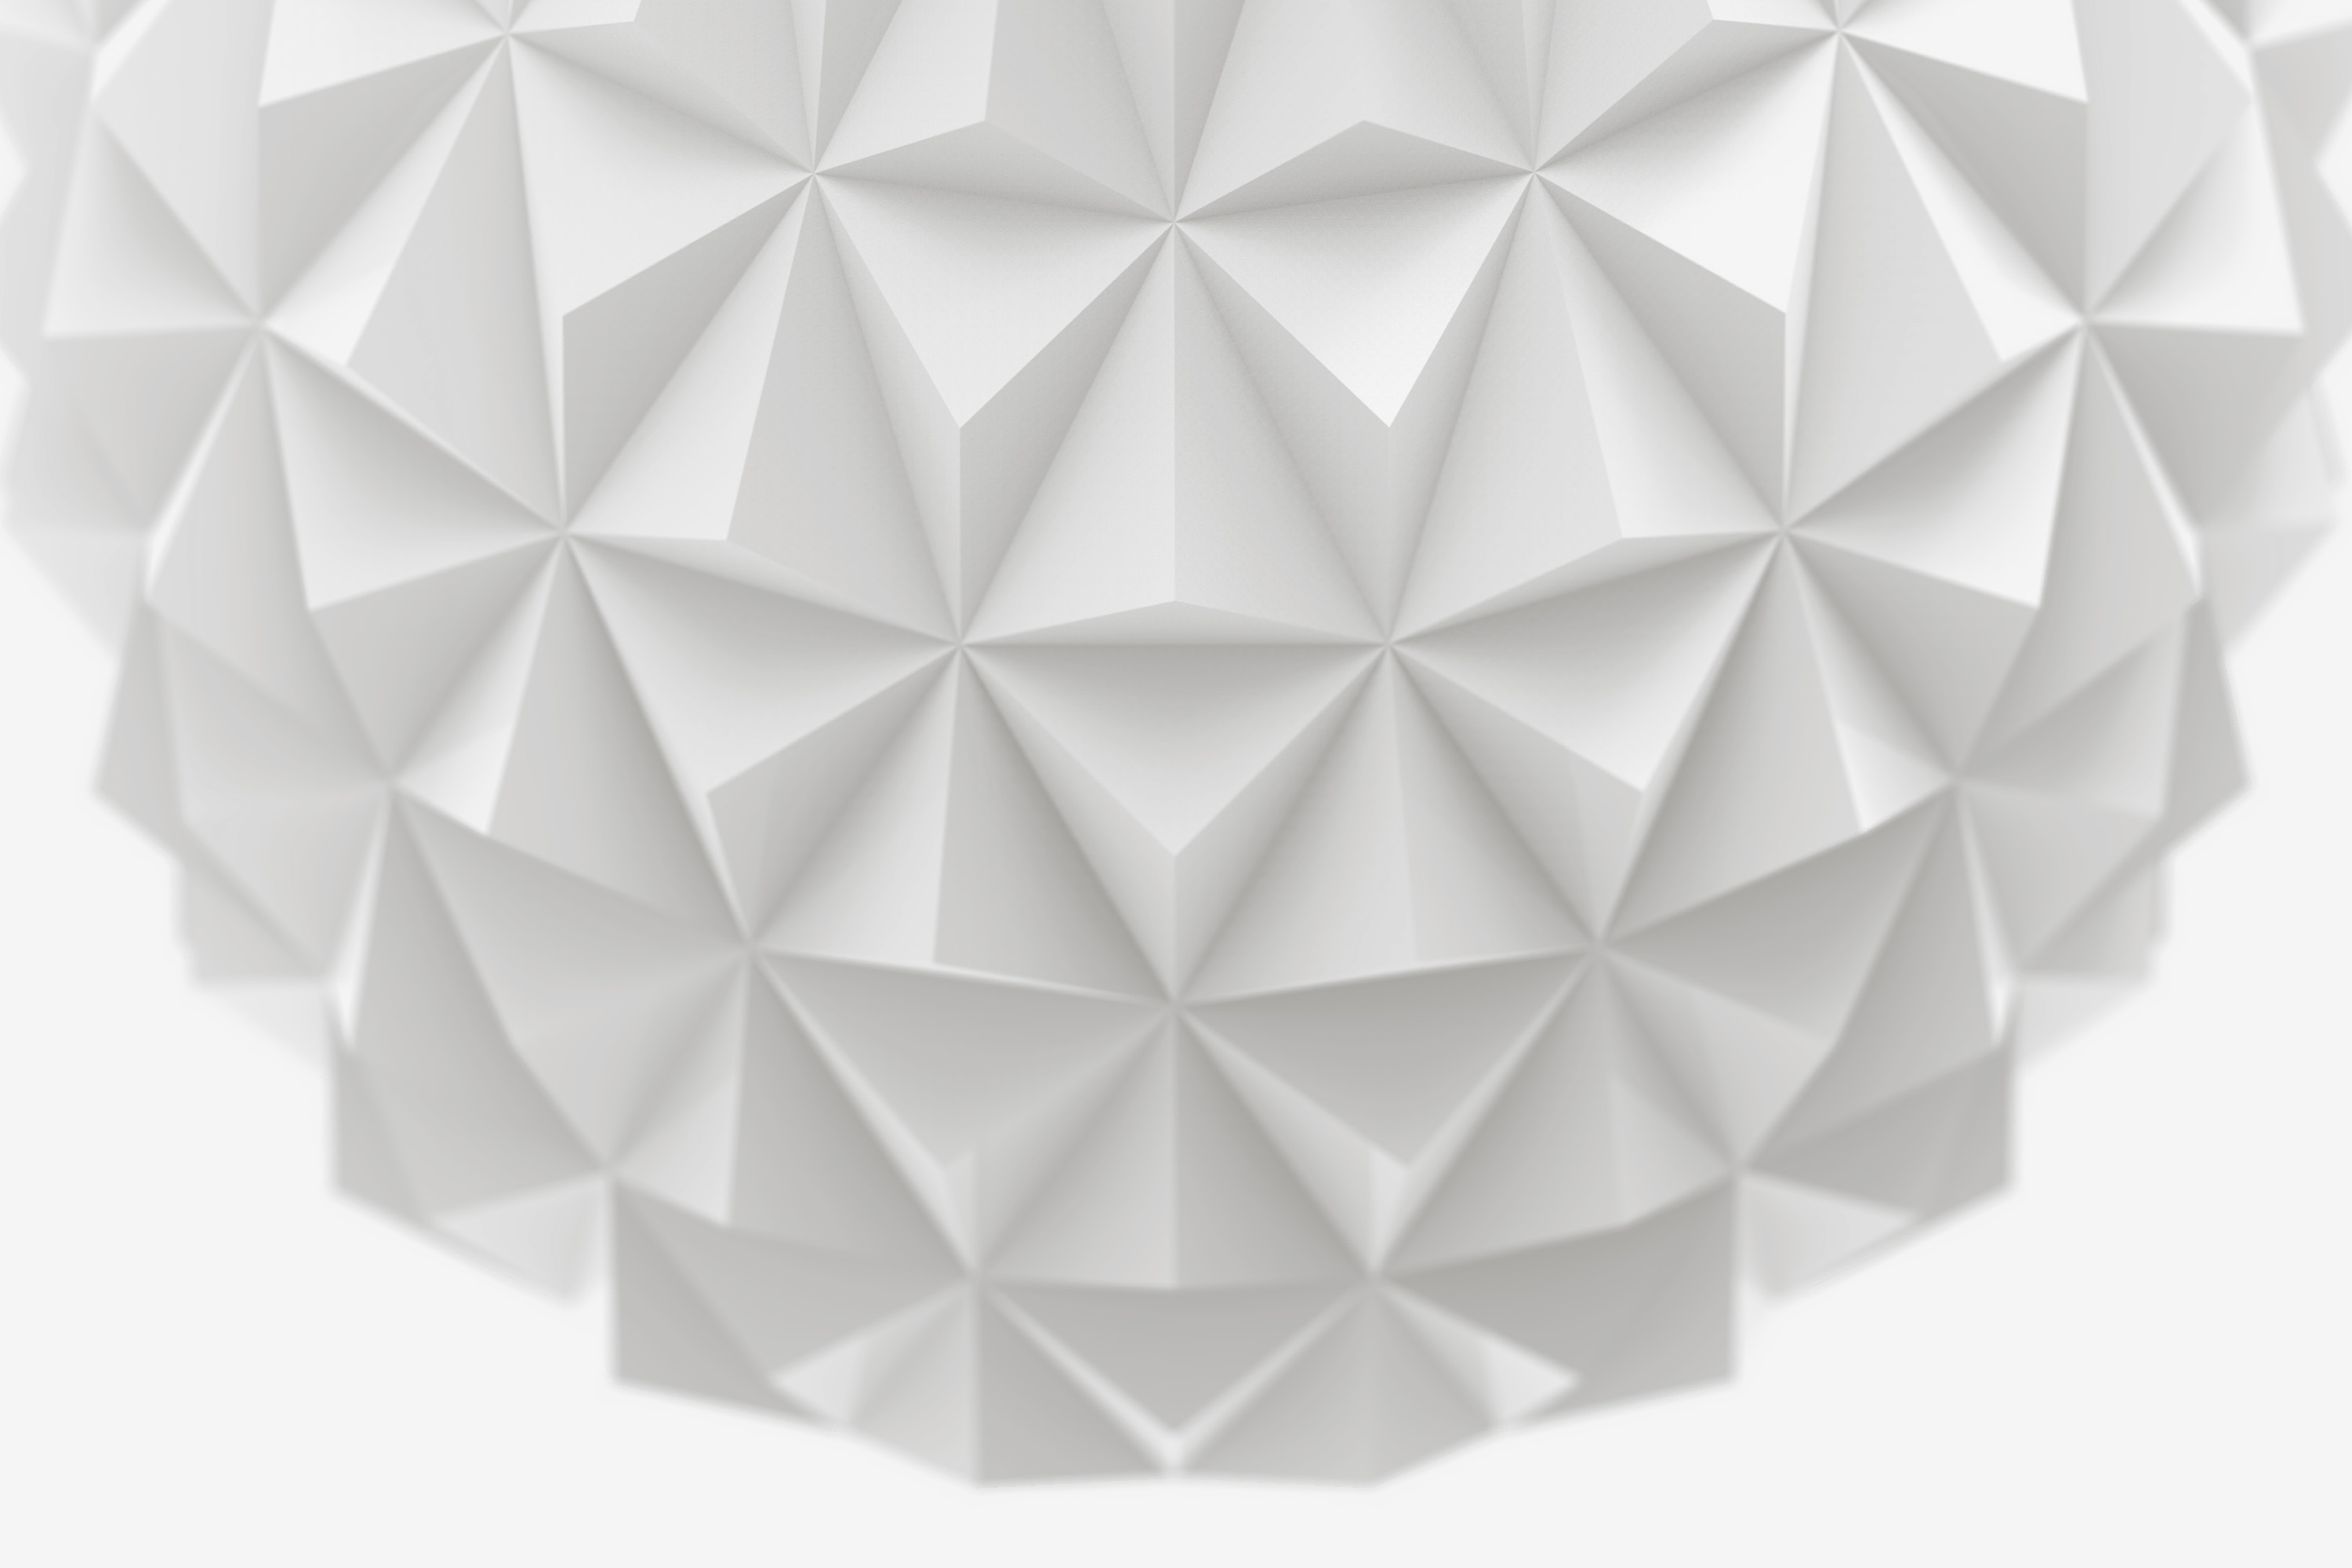 3D Printed Faceted Vase Detail, Design by Matthijs Kok for Cubify